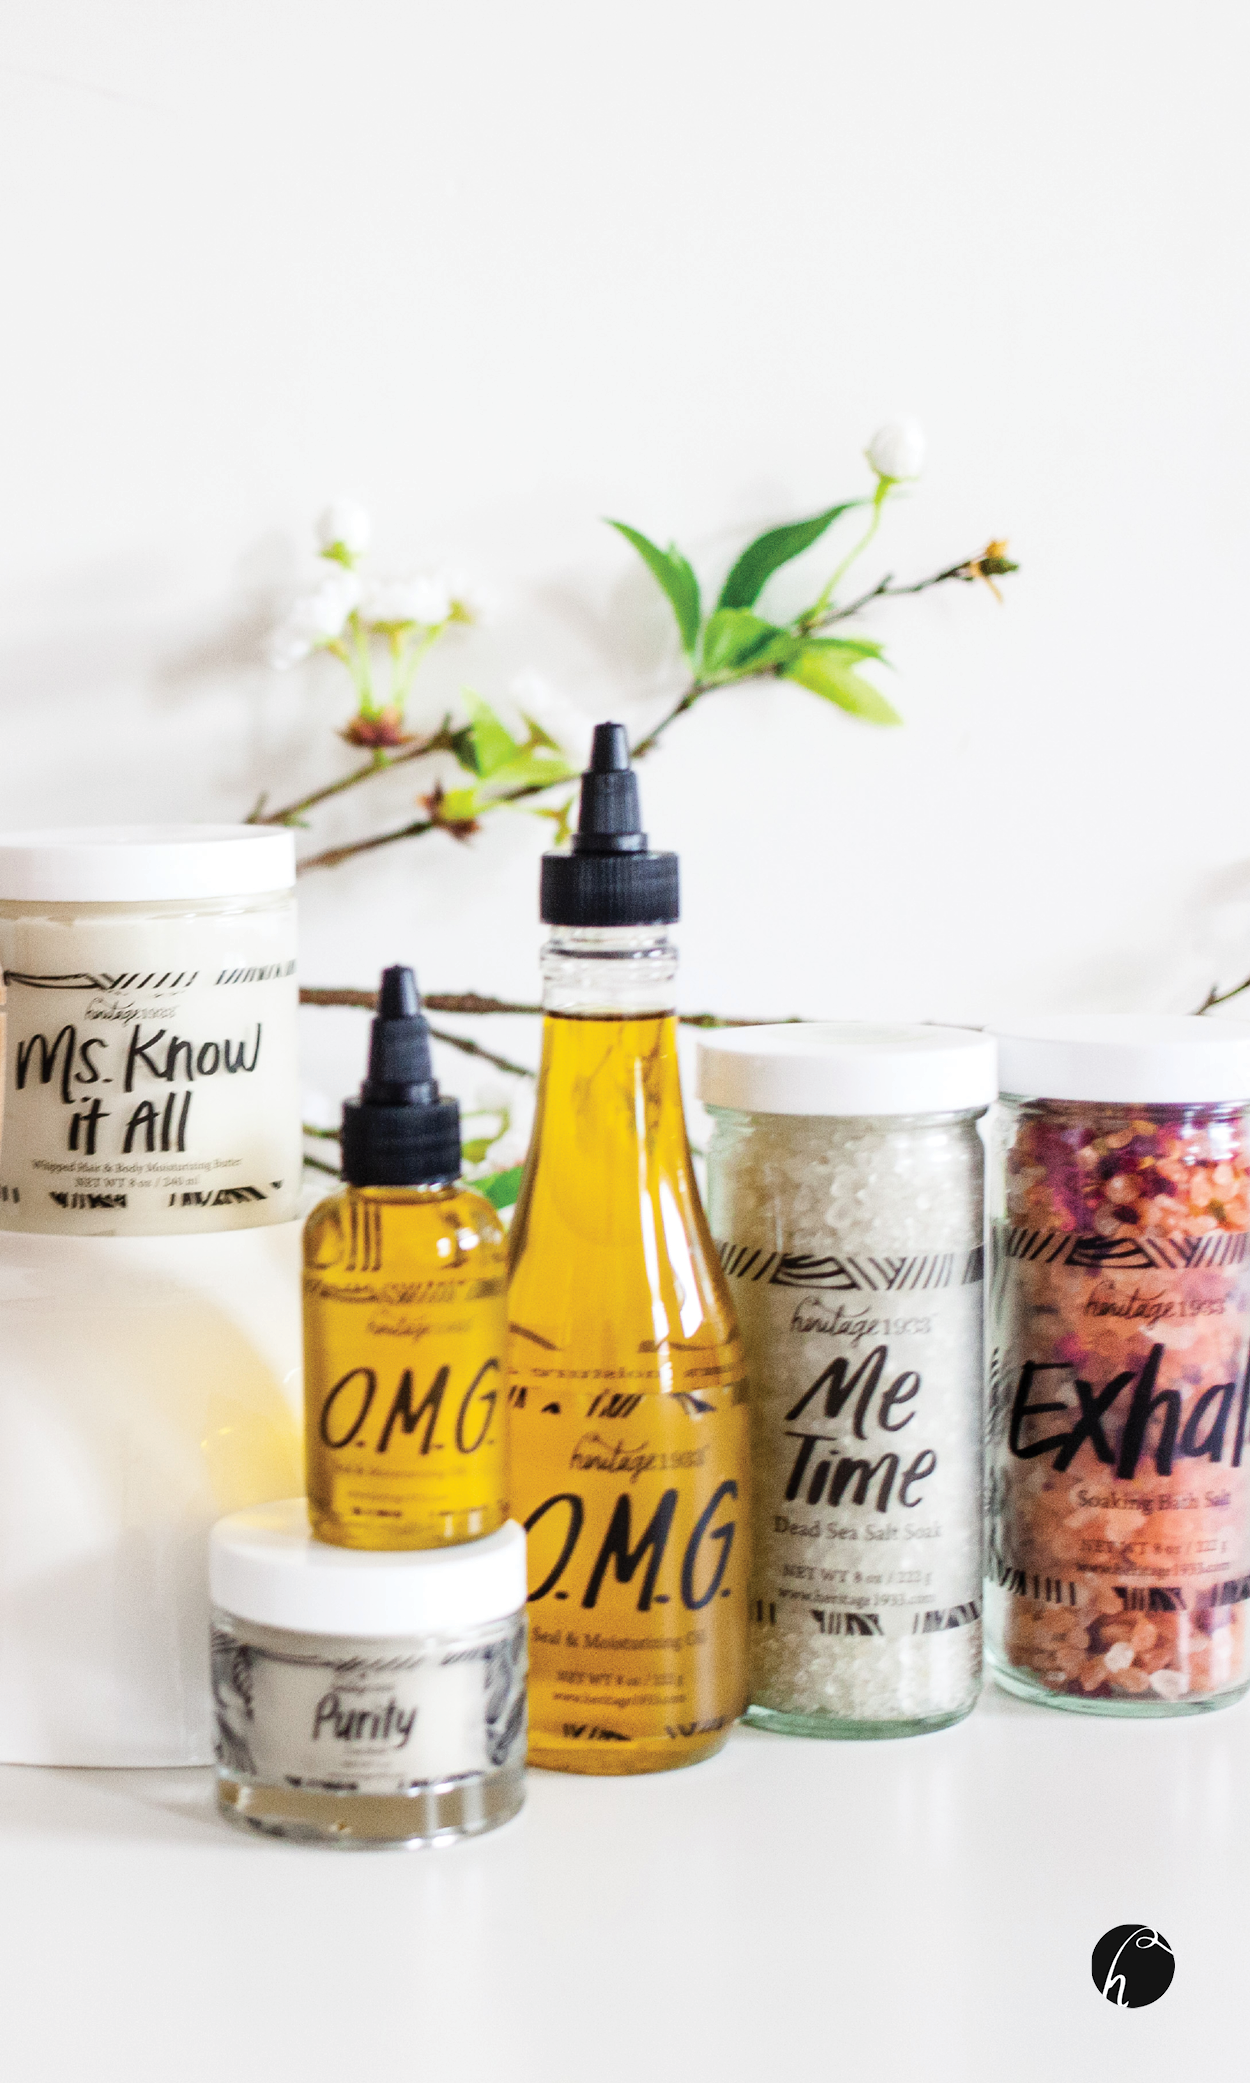 Natural skin, hair and body care for all Shop with